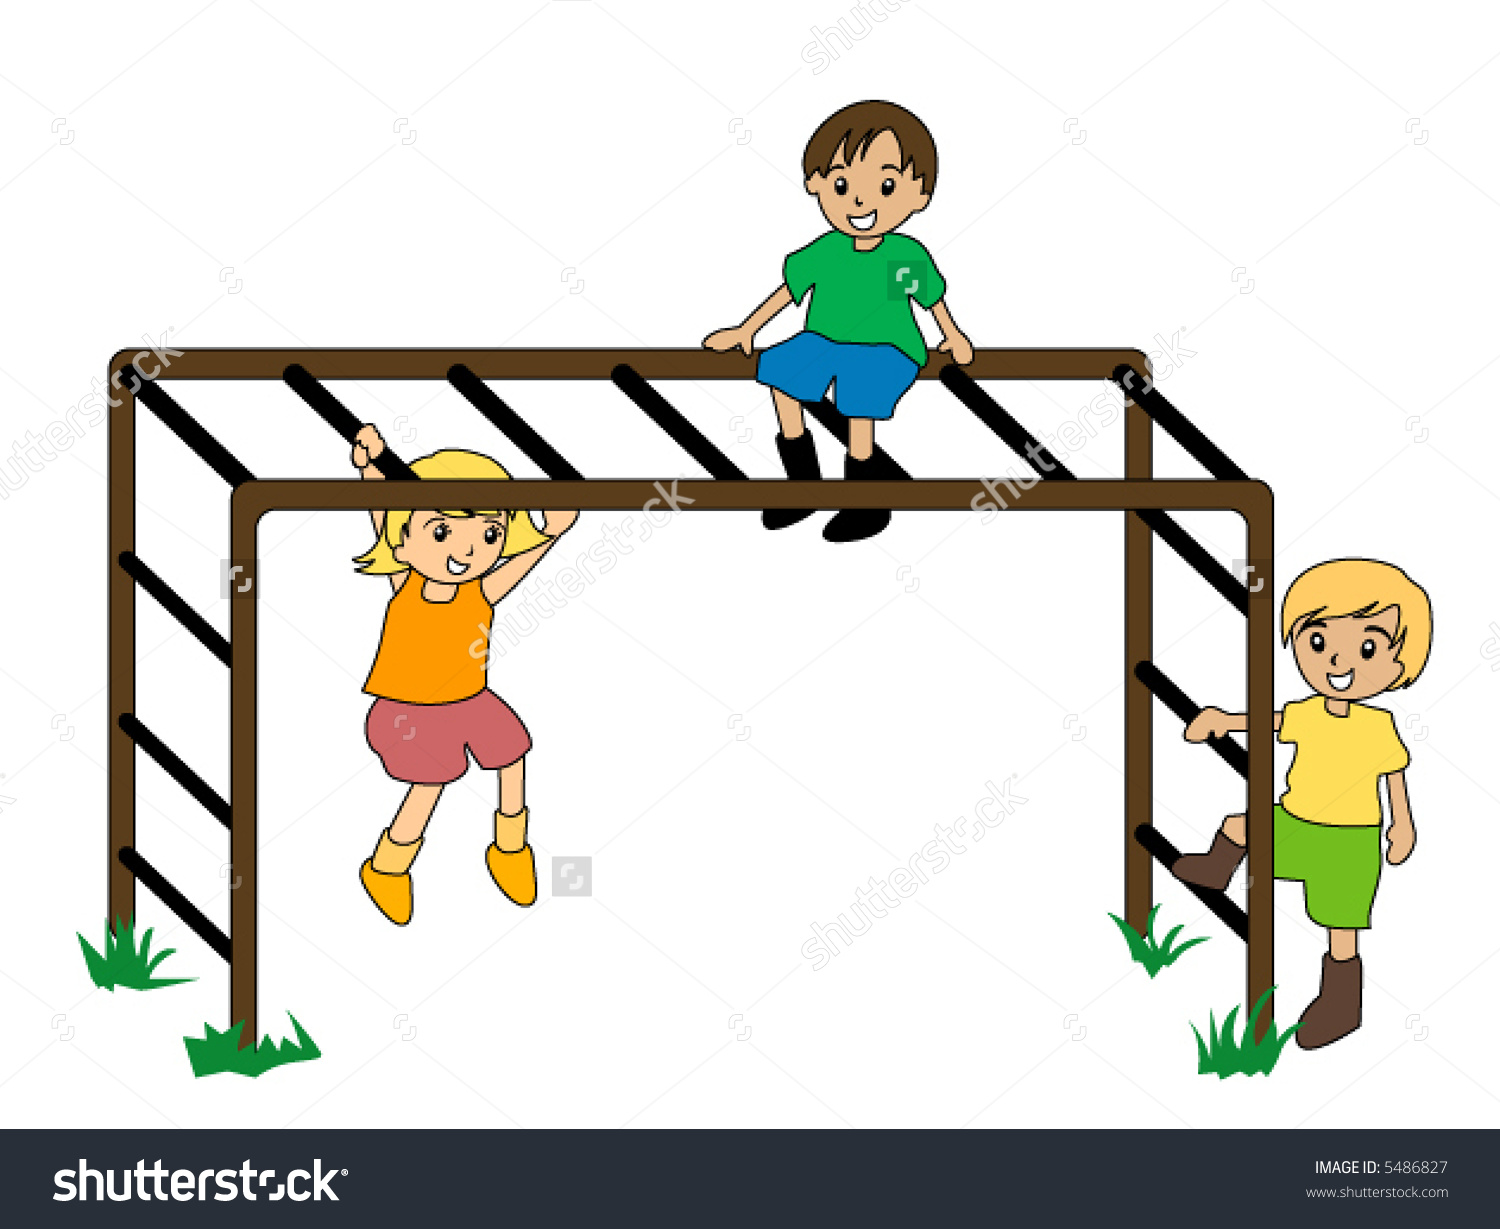 1500x1229 Collection Of Monkey Bars Clipart Black And White High